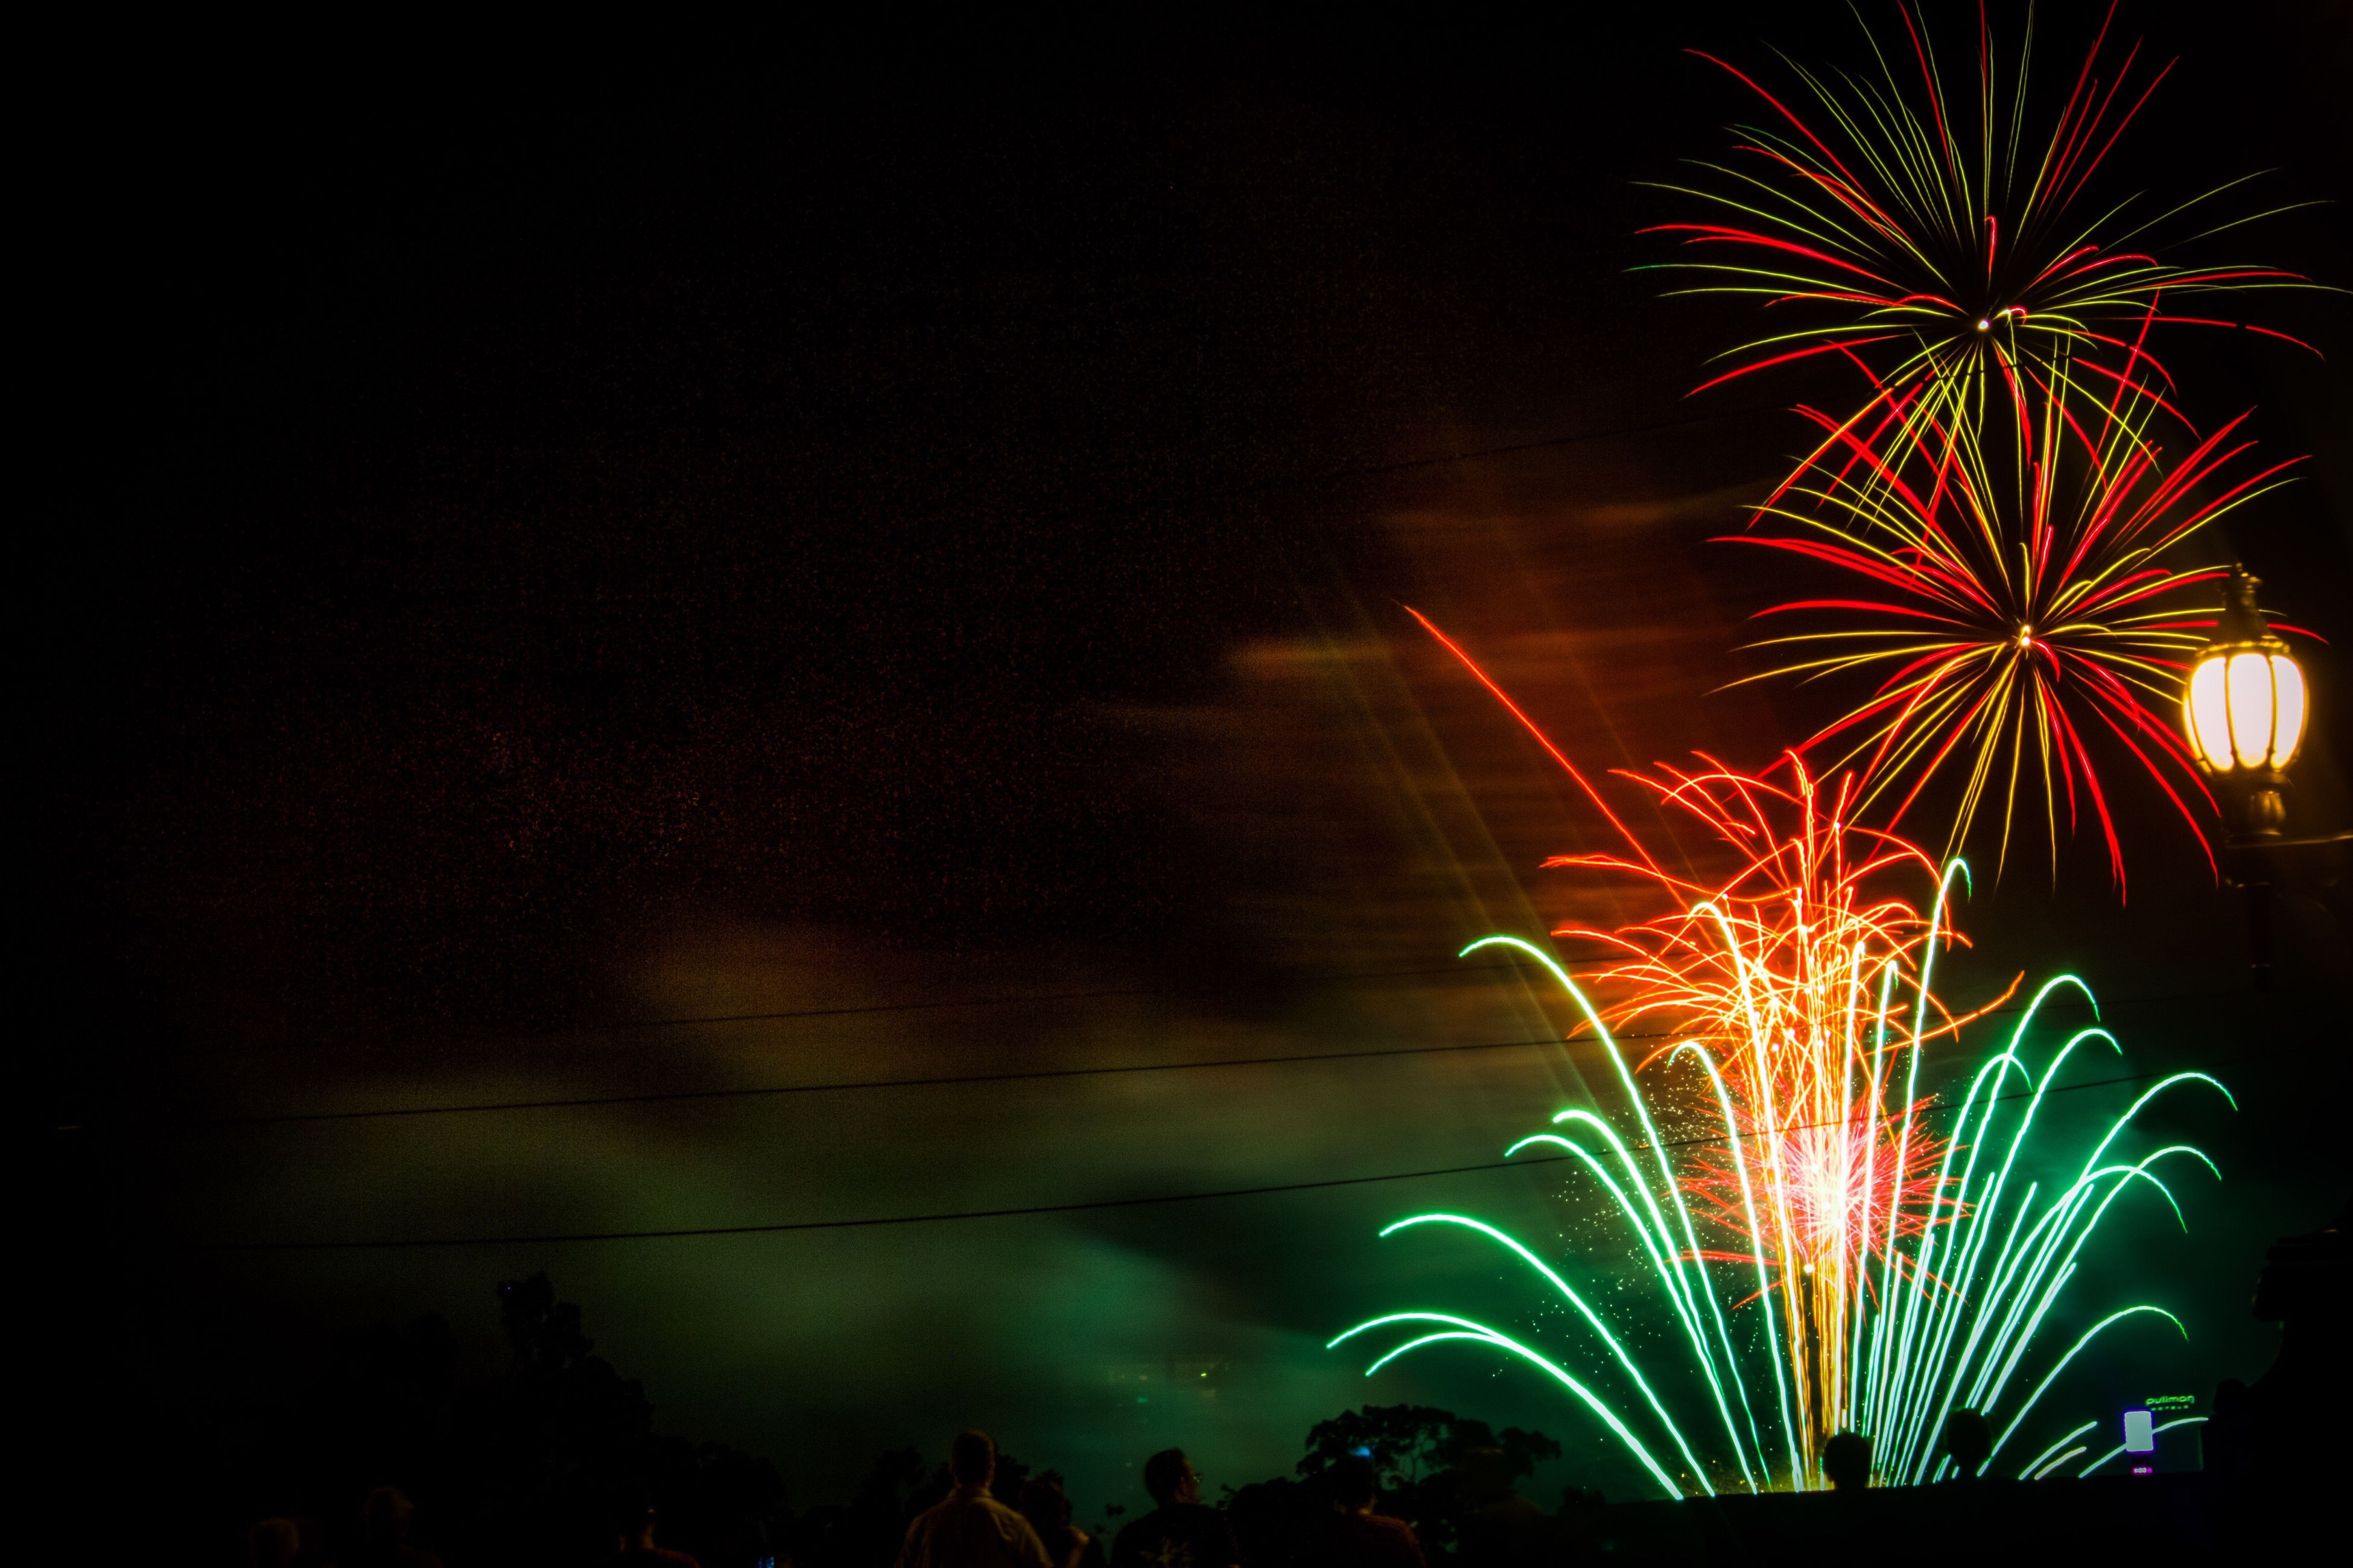 night, firework display, celebration, exploding, firework - man made object, illuminated, sky, long exposure, arts culture and entertainment, sparks, low angle view, multi colored, outdoors, no people, motion, tree, firework